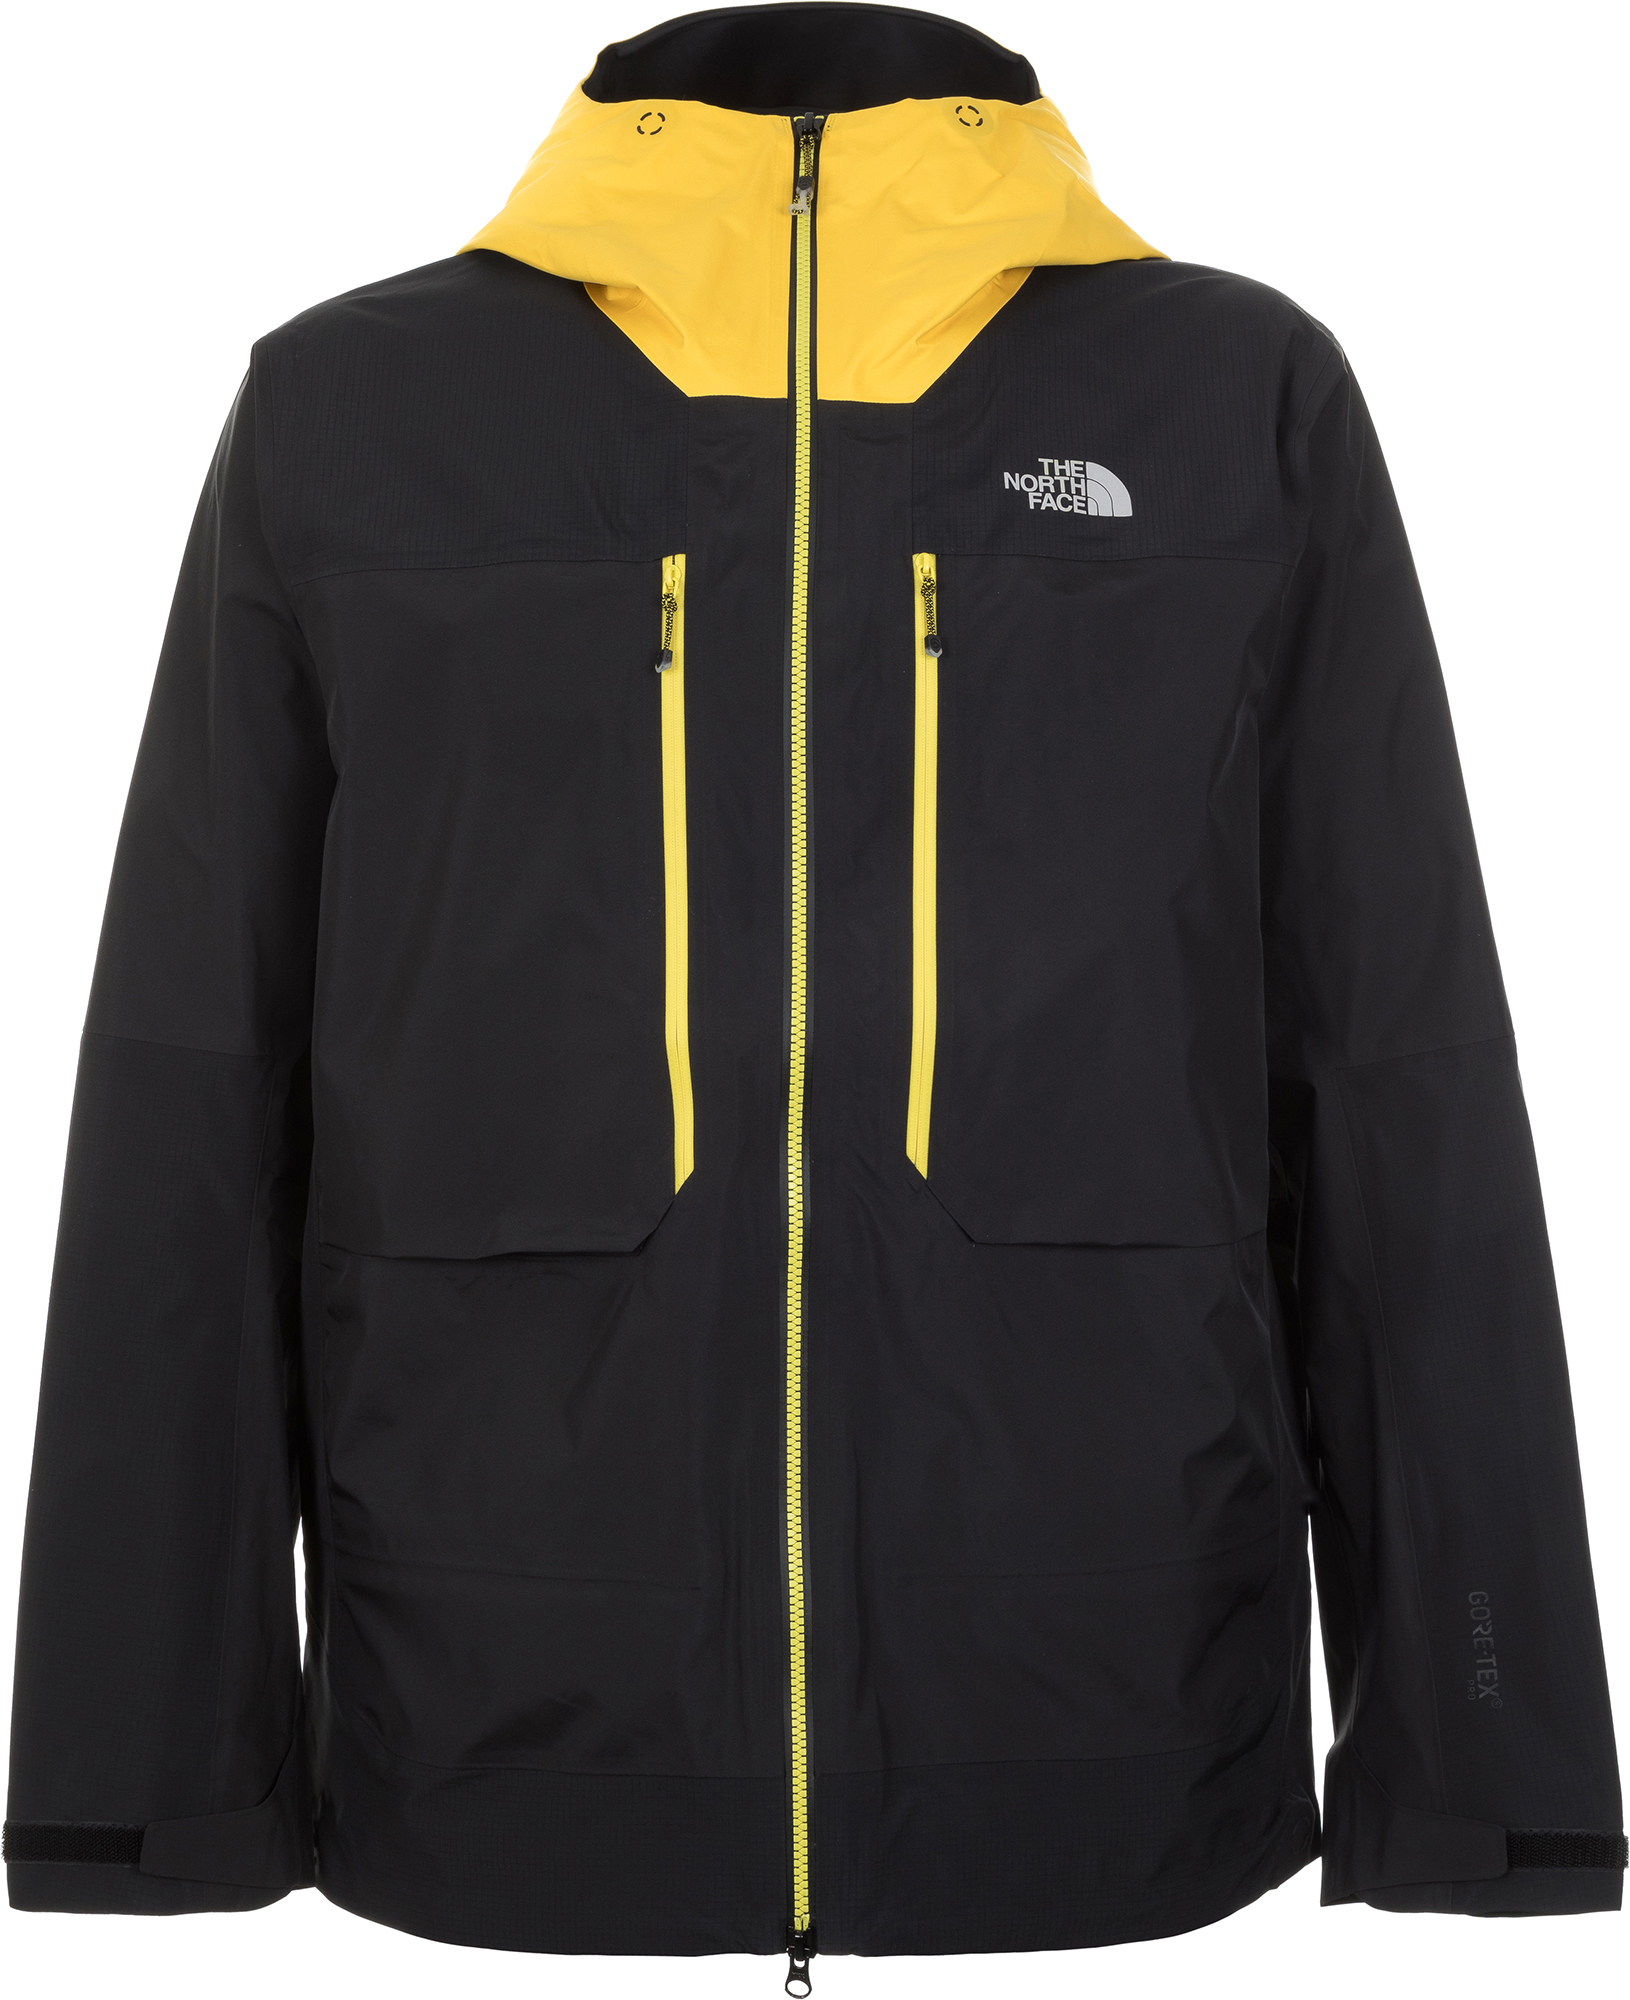 The North Face Ветровка мужская The North Face Summit L5 GTX Pro, размер 46 куртка the north face the north face summit l2 fuseform fleece 1 2 zip hoodie